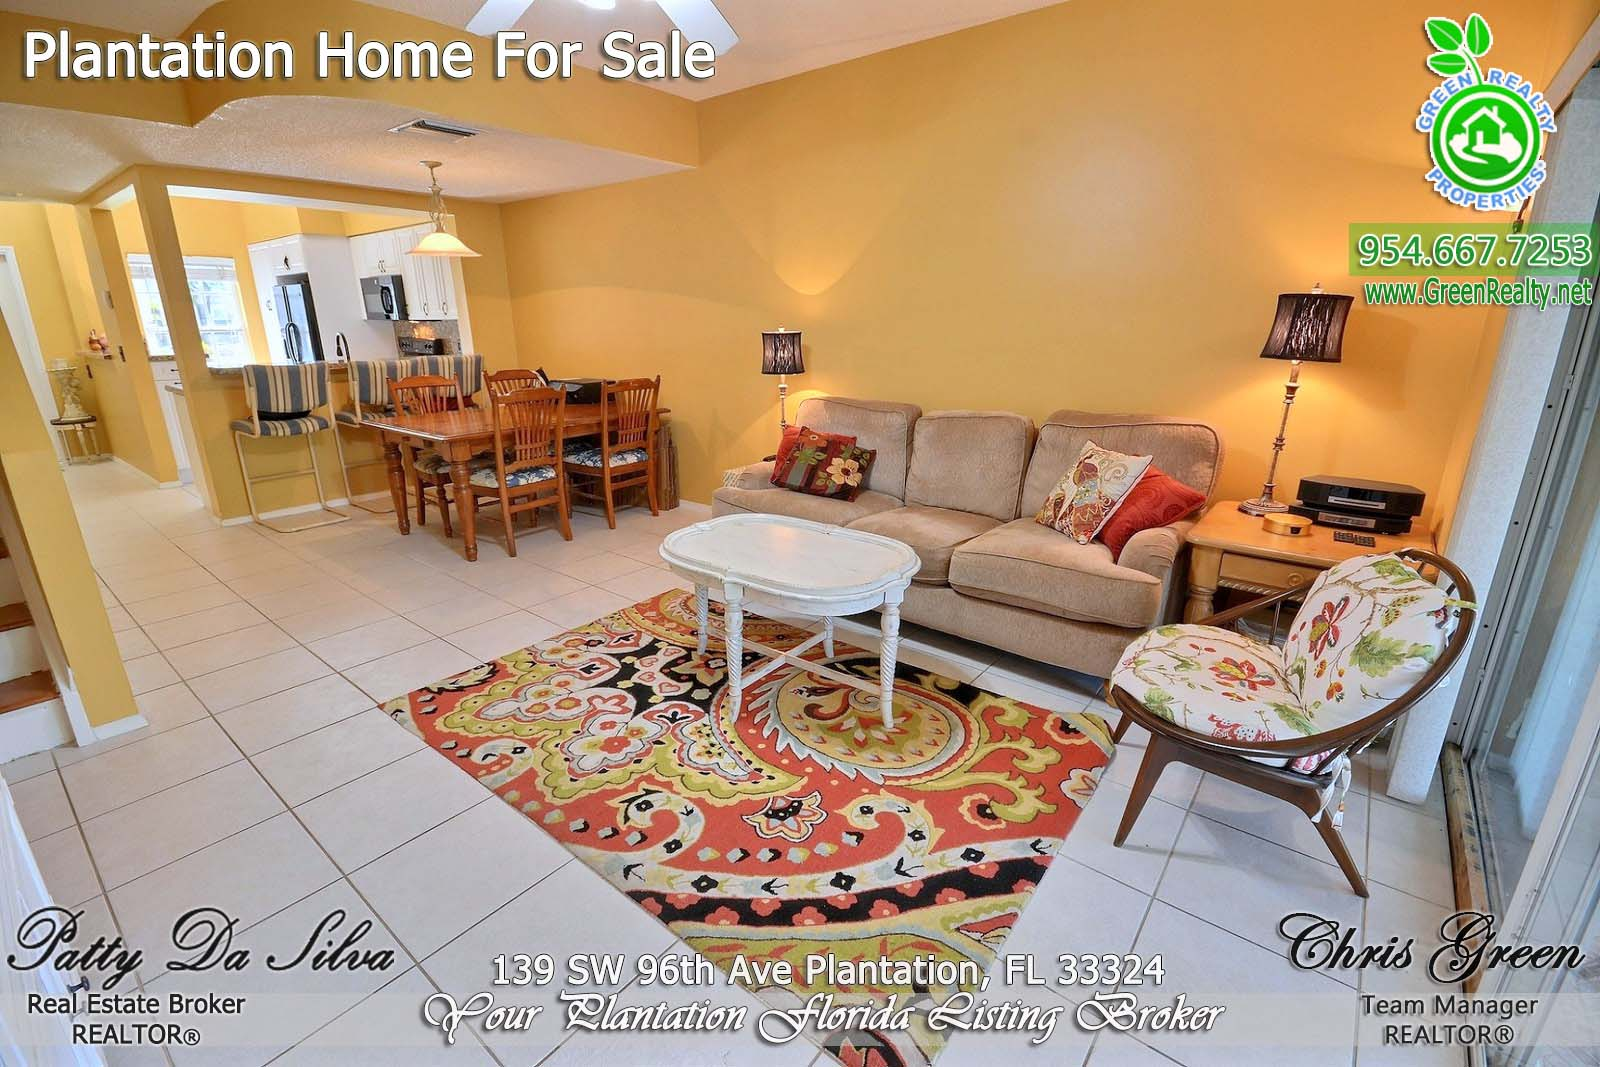 7 Homes For Sale in Plantation Florida (5)